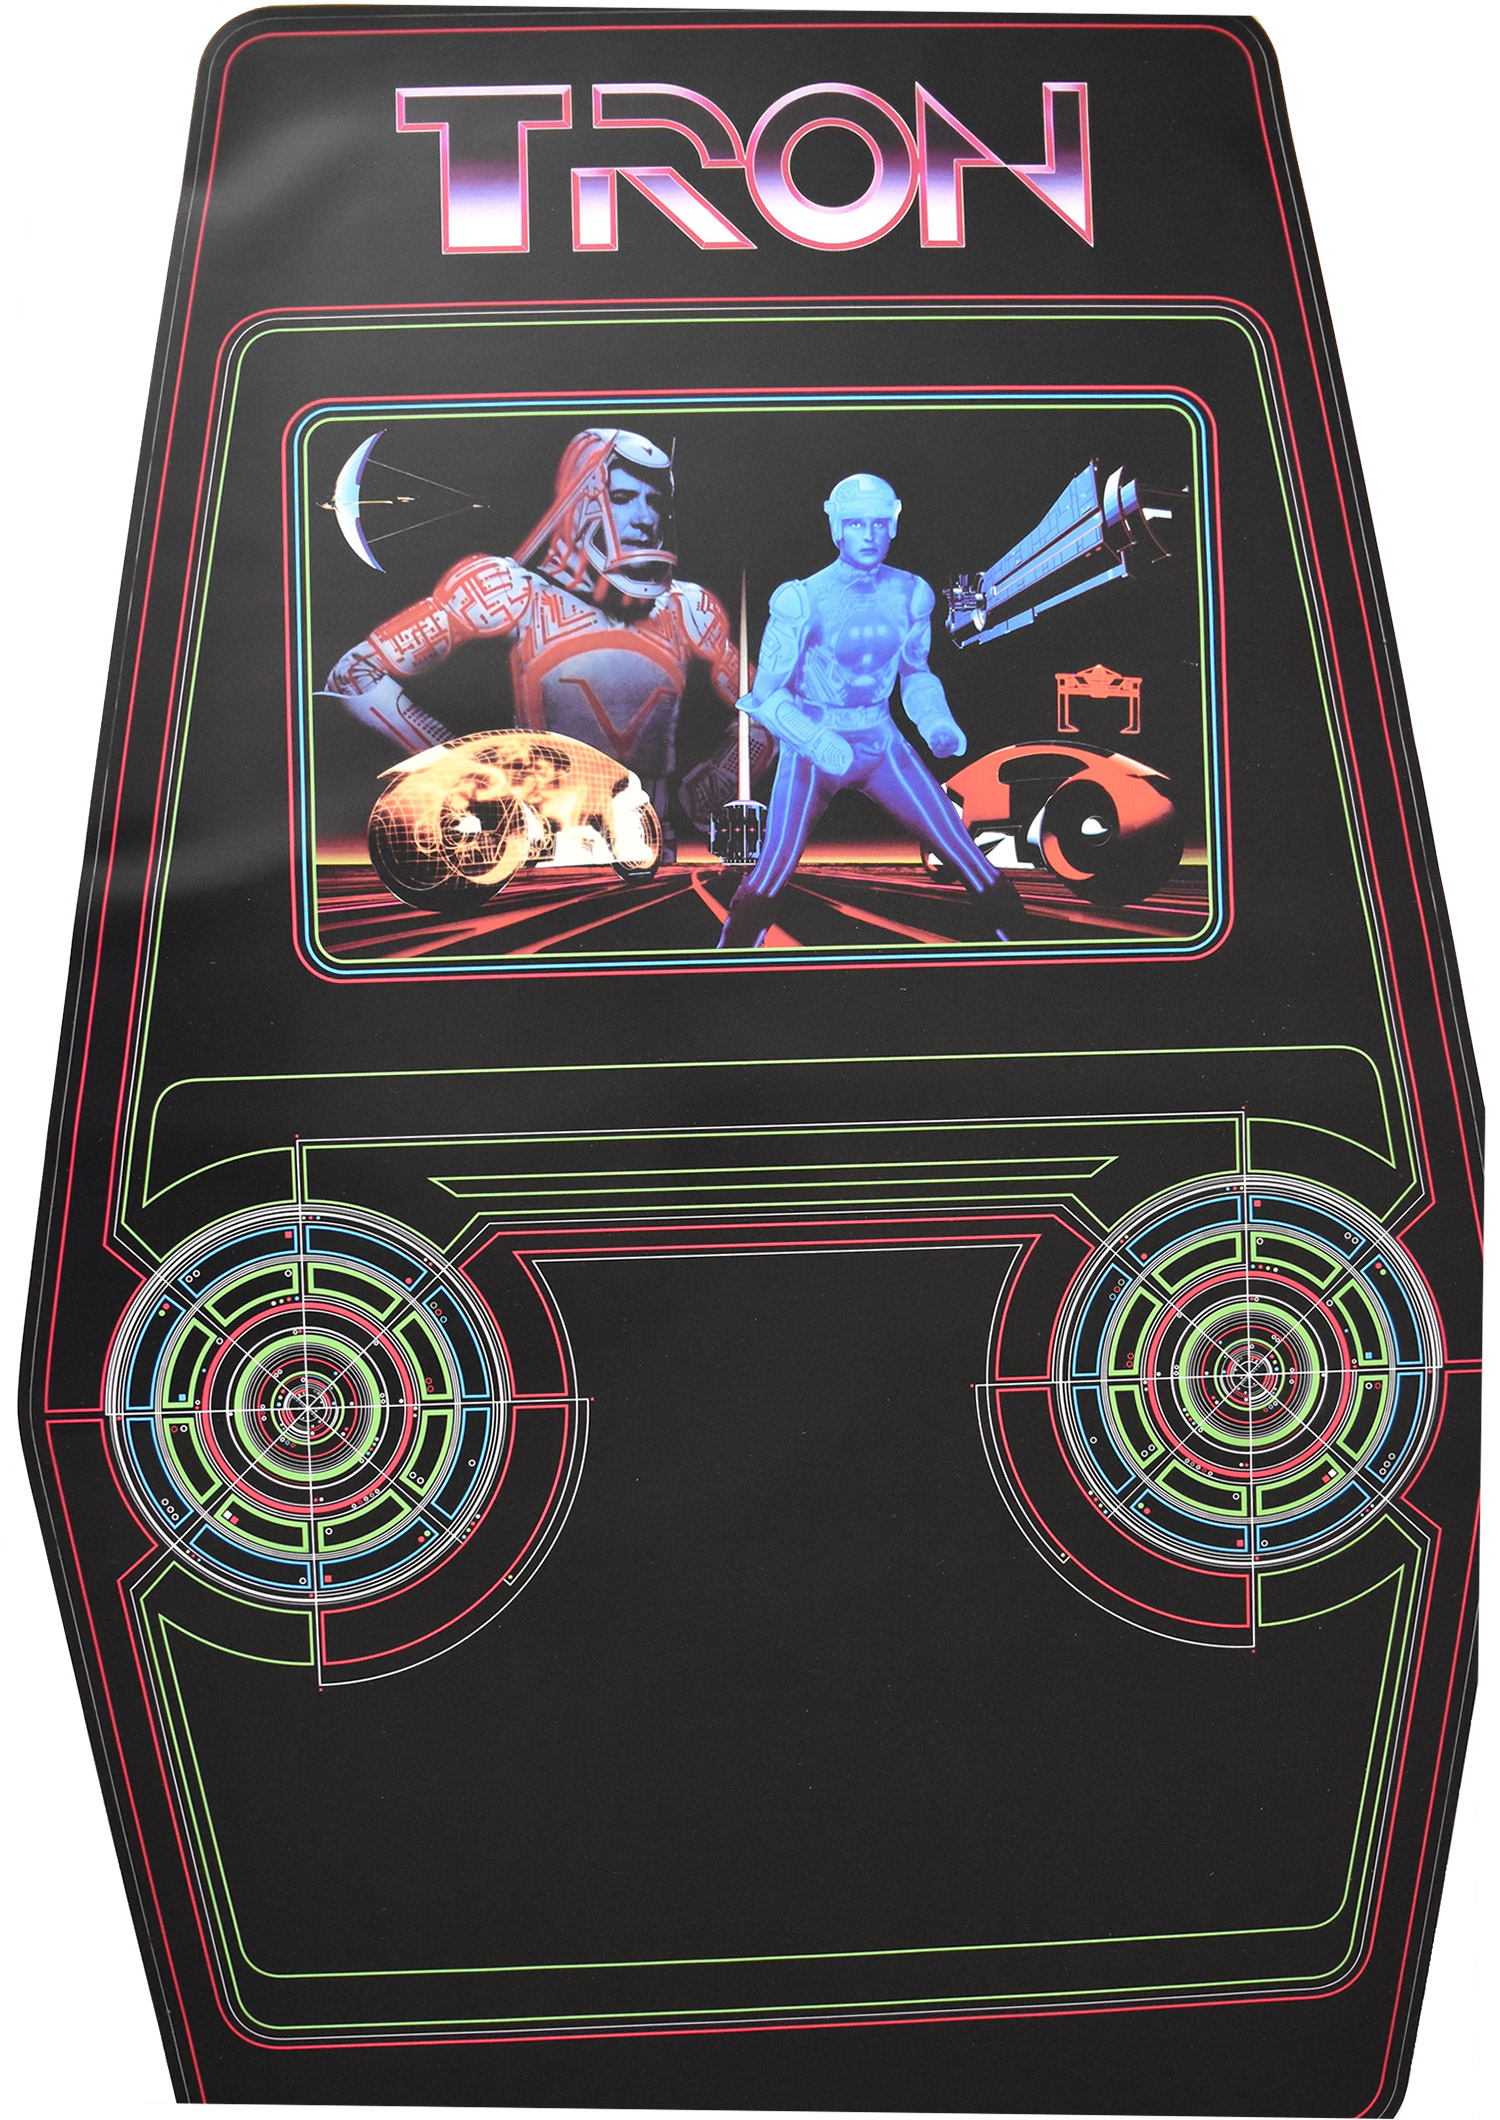 Tron Side Art Phoenix Arcade 1 Source For Screen